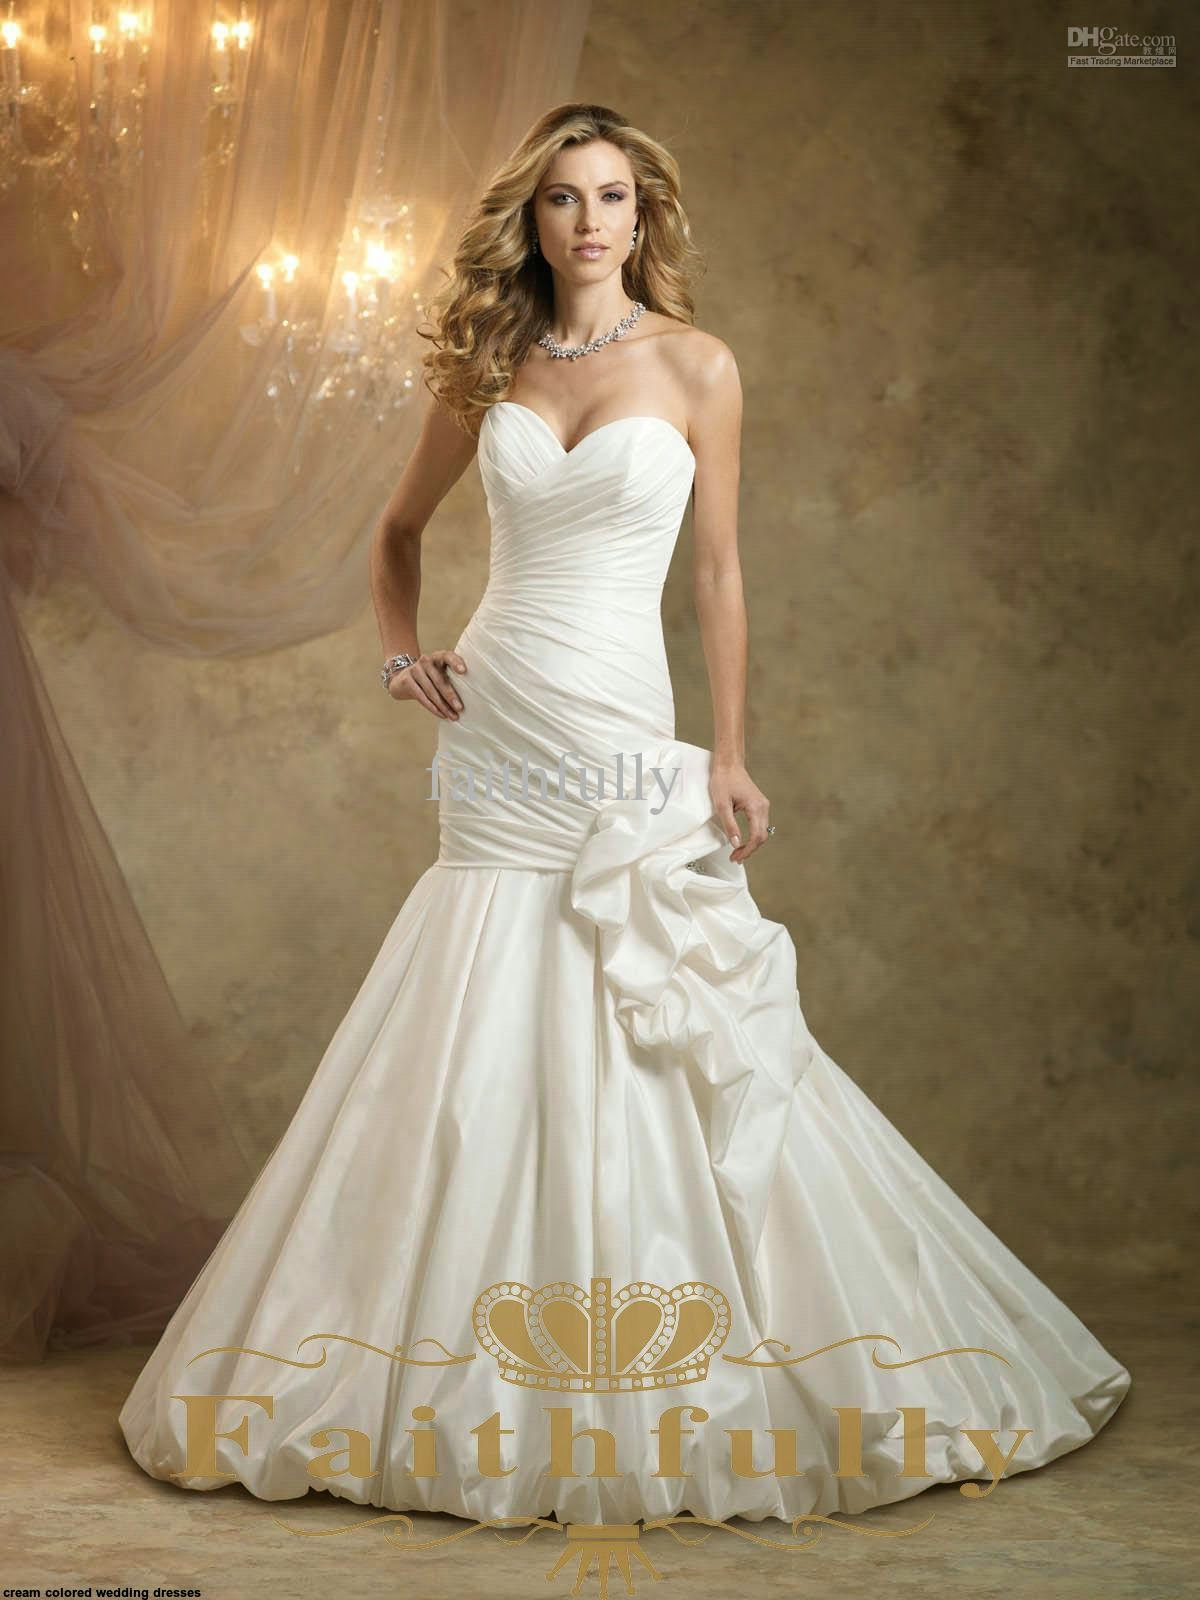 cream colored wedding dresses